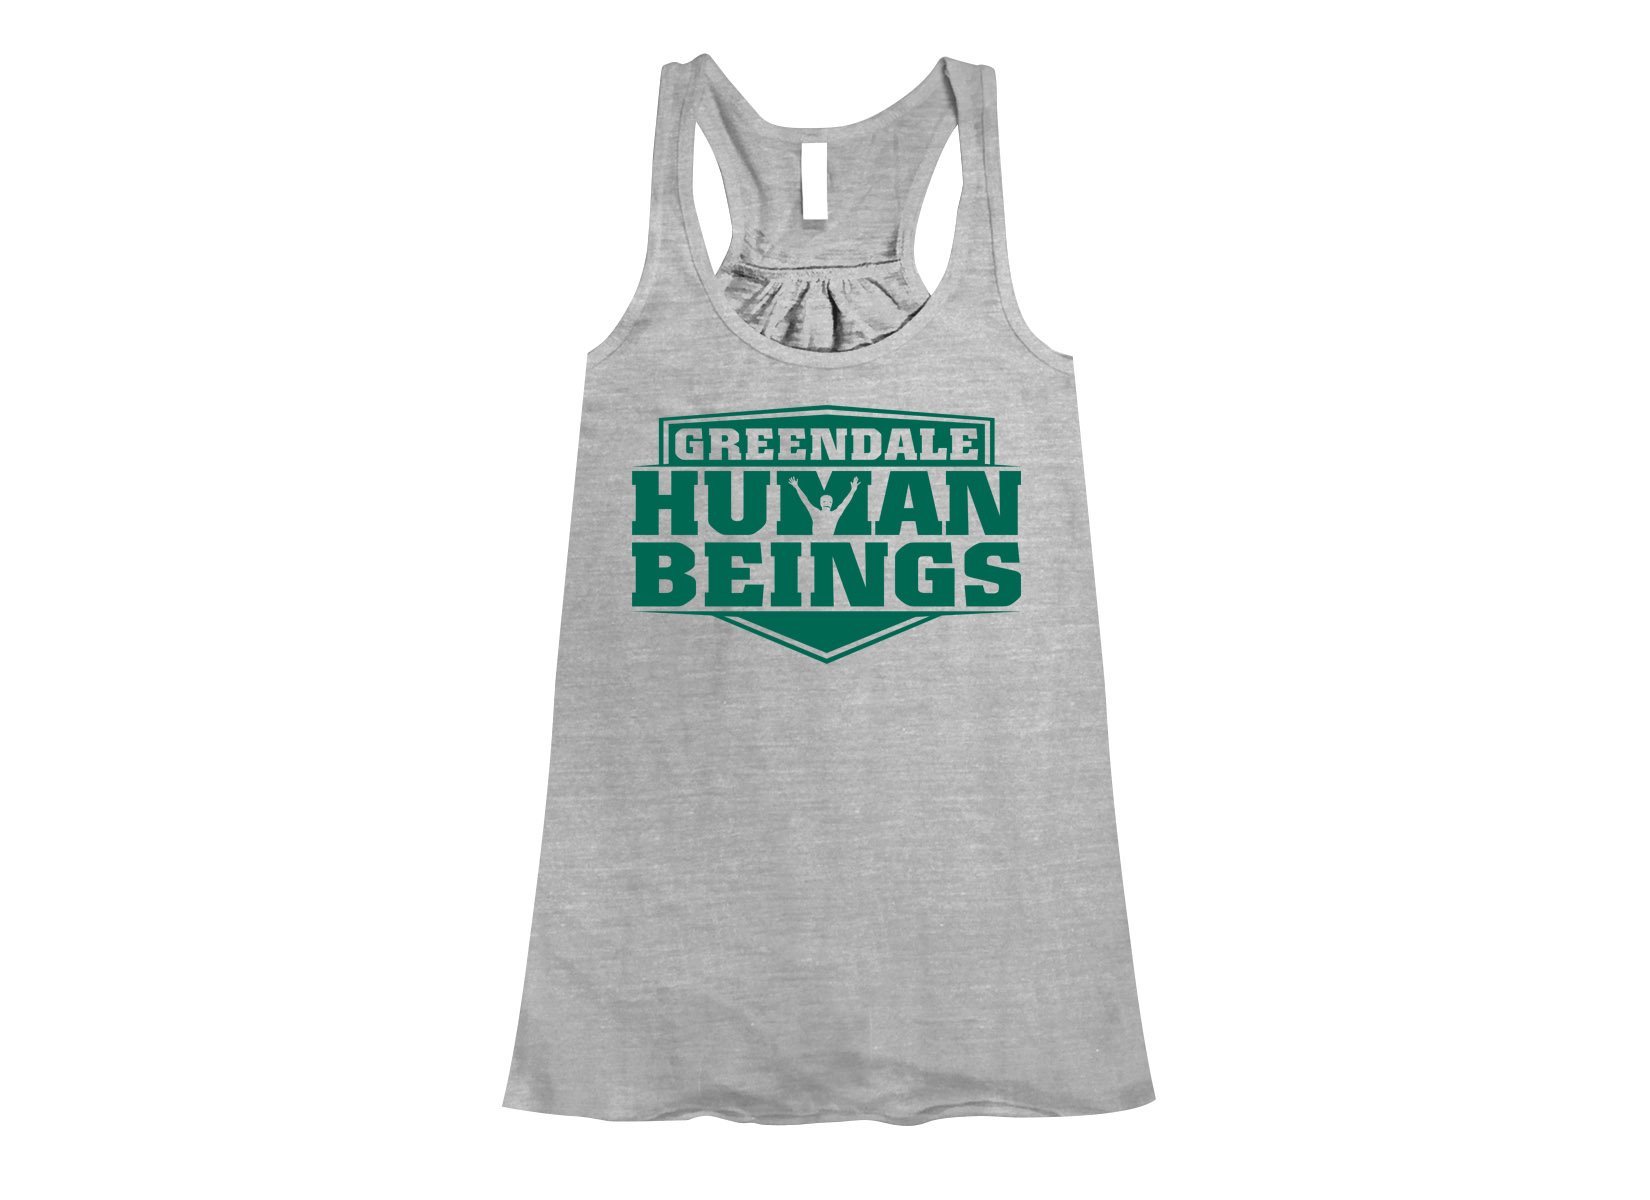 Greendale Human Beings on Womens Tanks T-Shirt